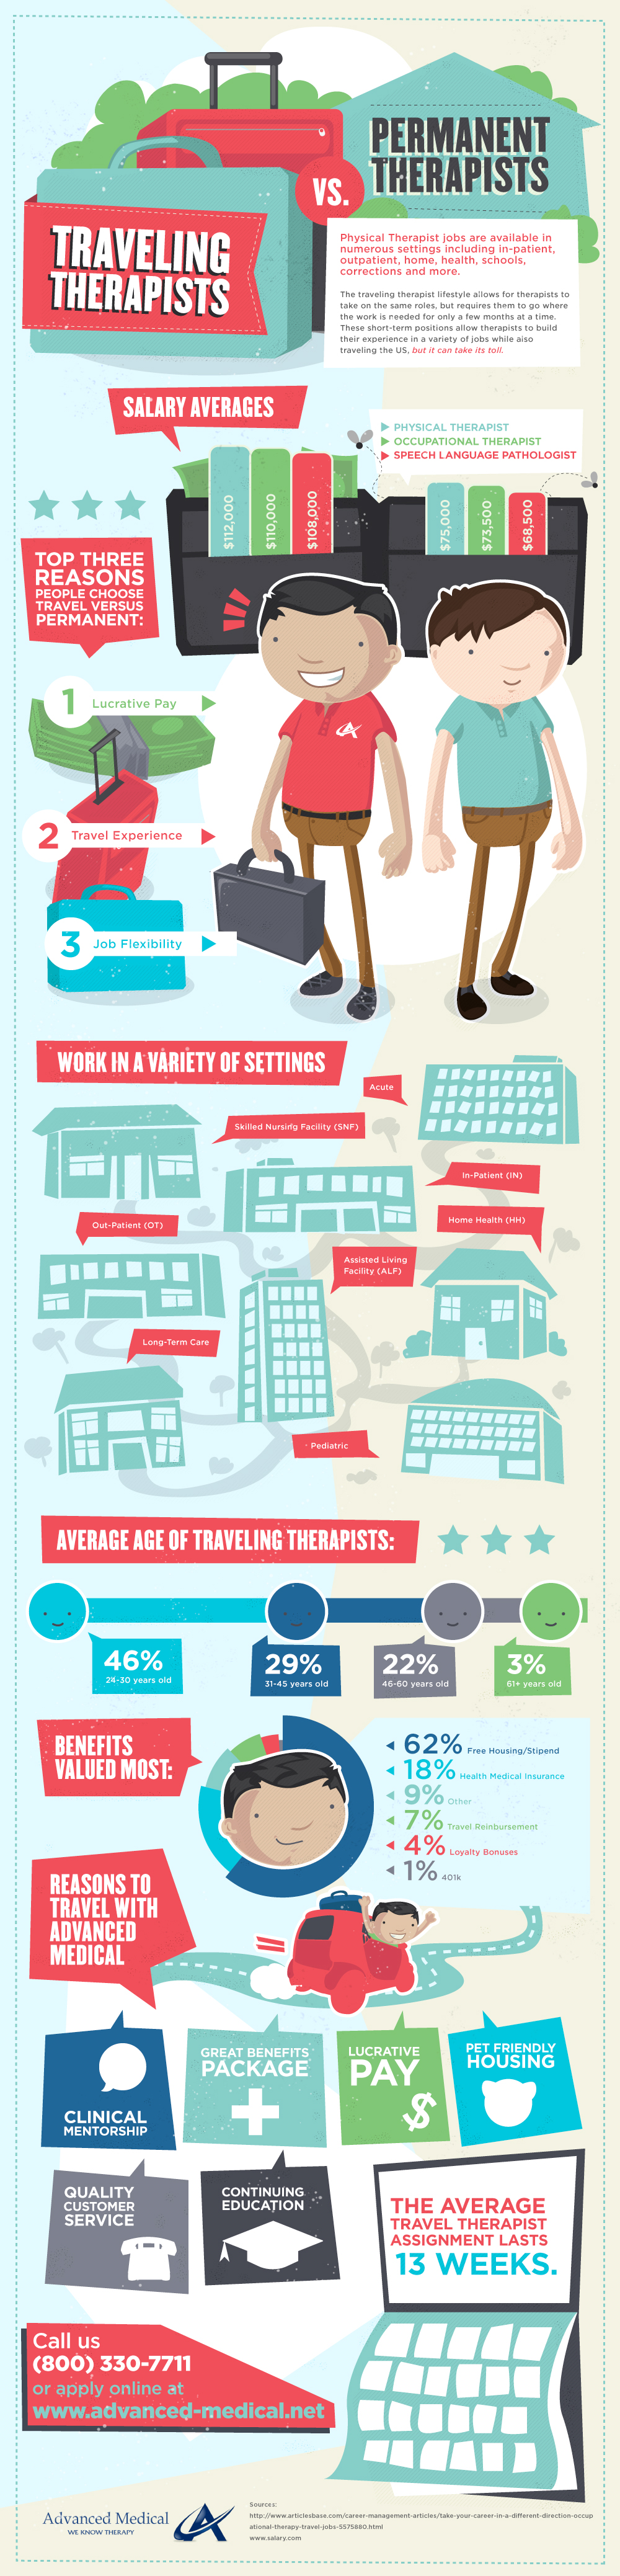 Travel vs Permanent Therapist